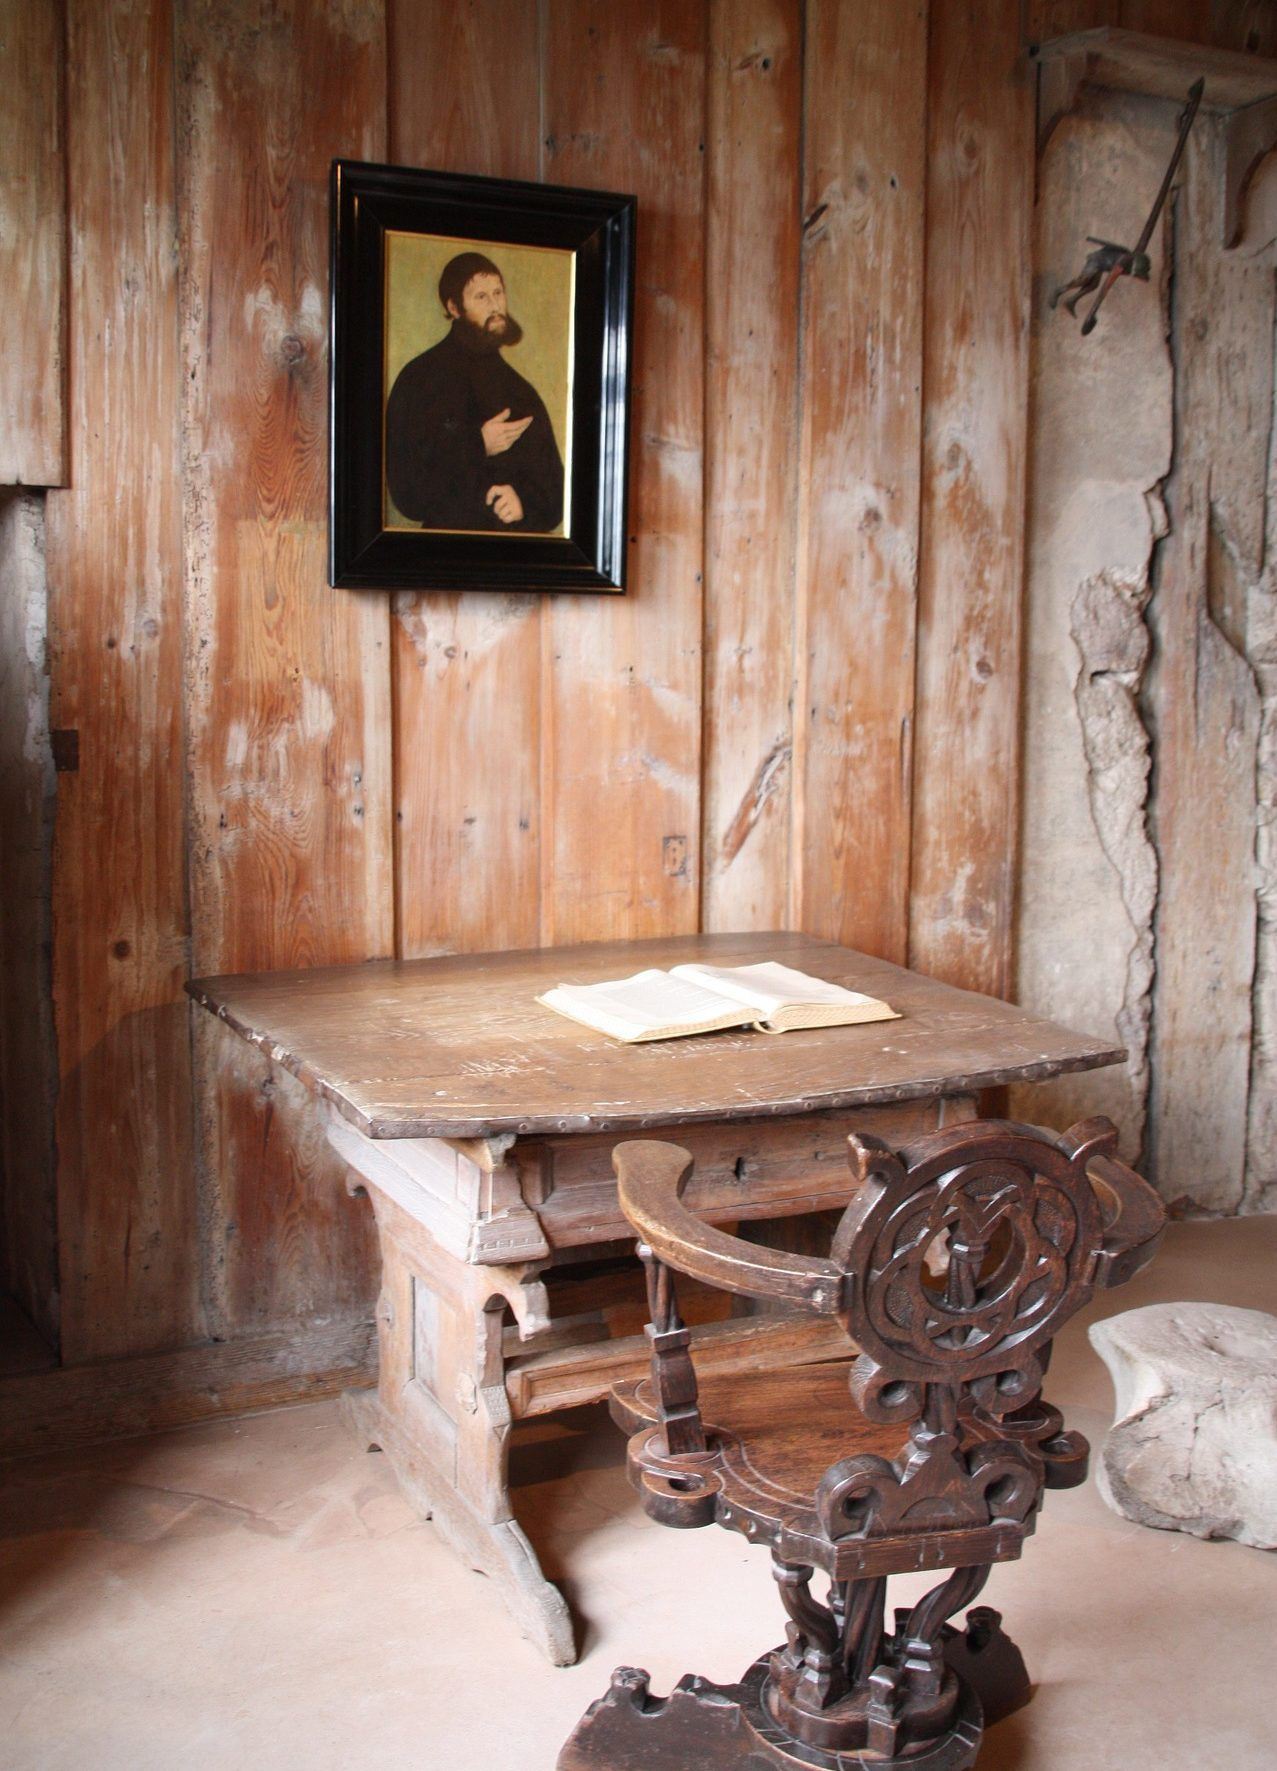 Martin Luther's Desk at Wohlberg Castle